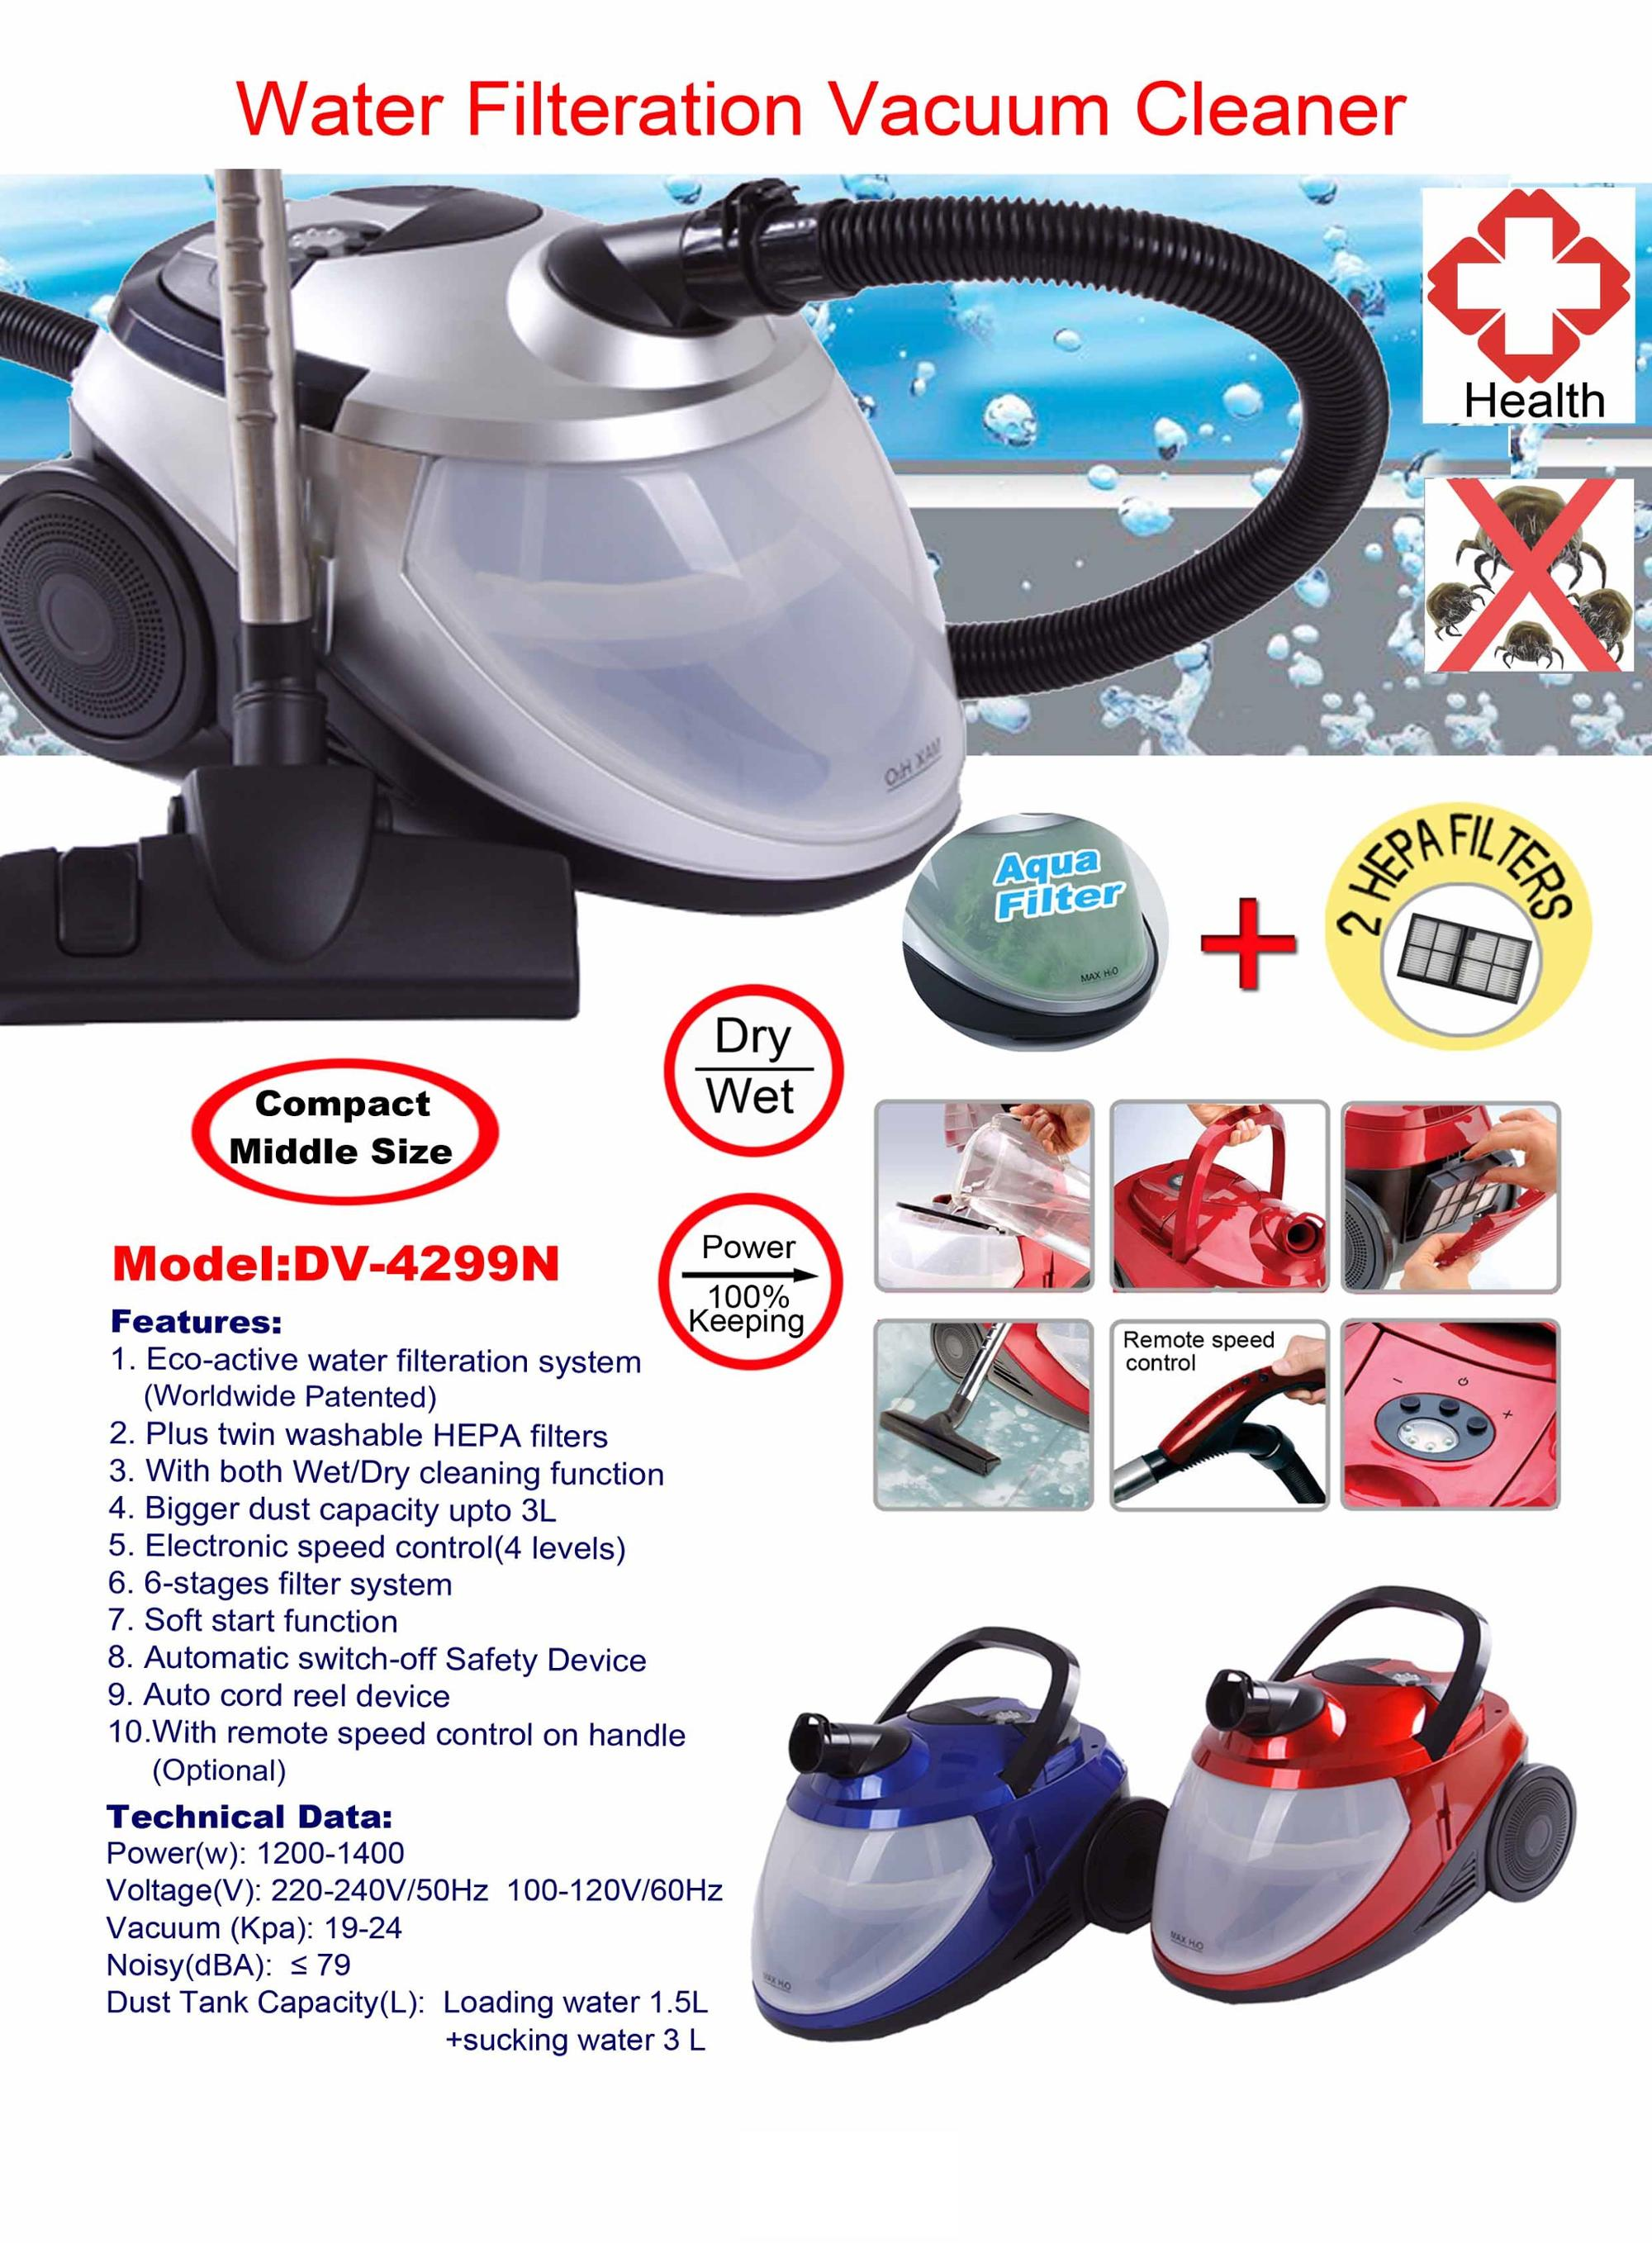 Rainbow Water Filtration Vacuum Cleaner with Water Filter Vacuum Cleaner